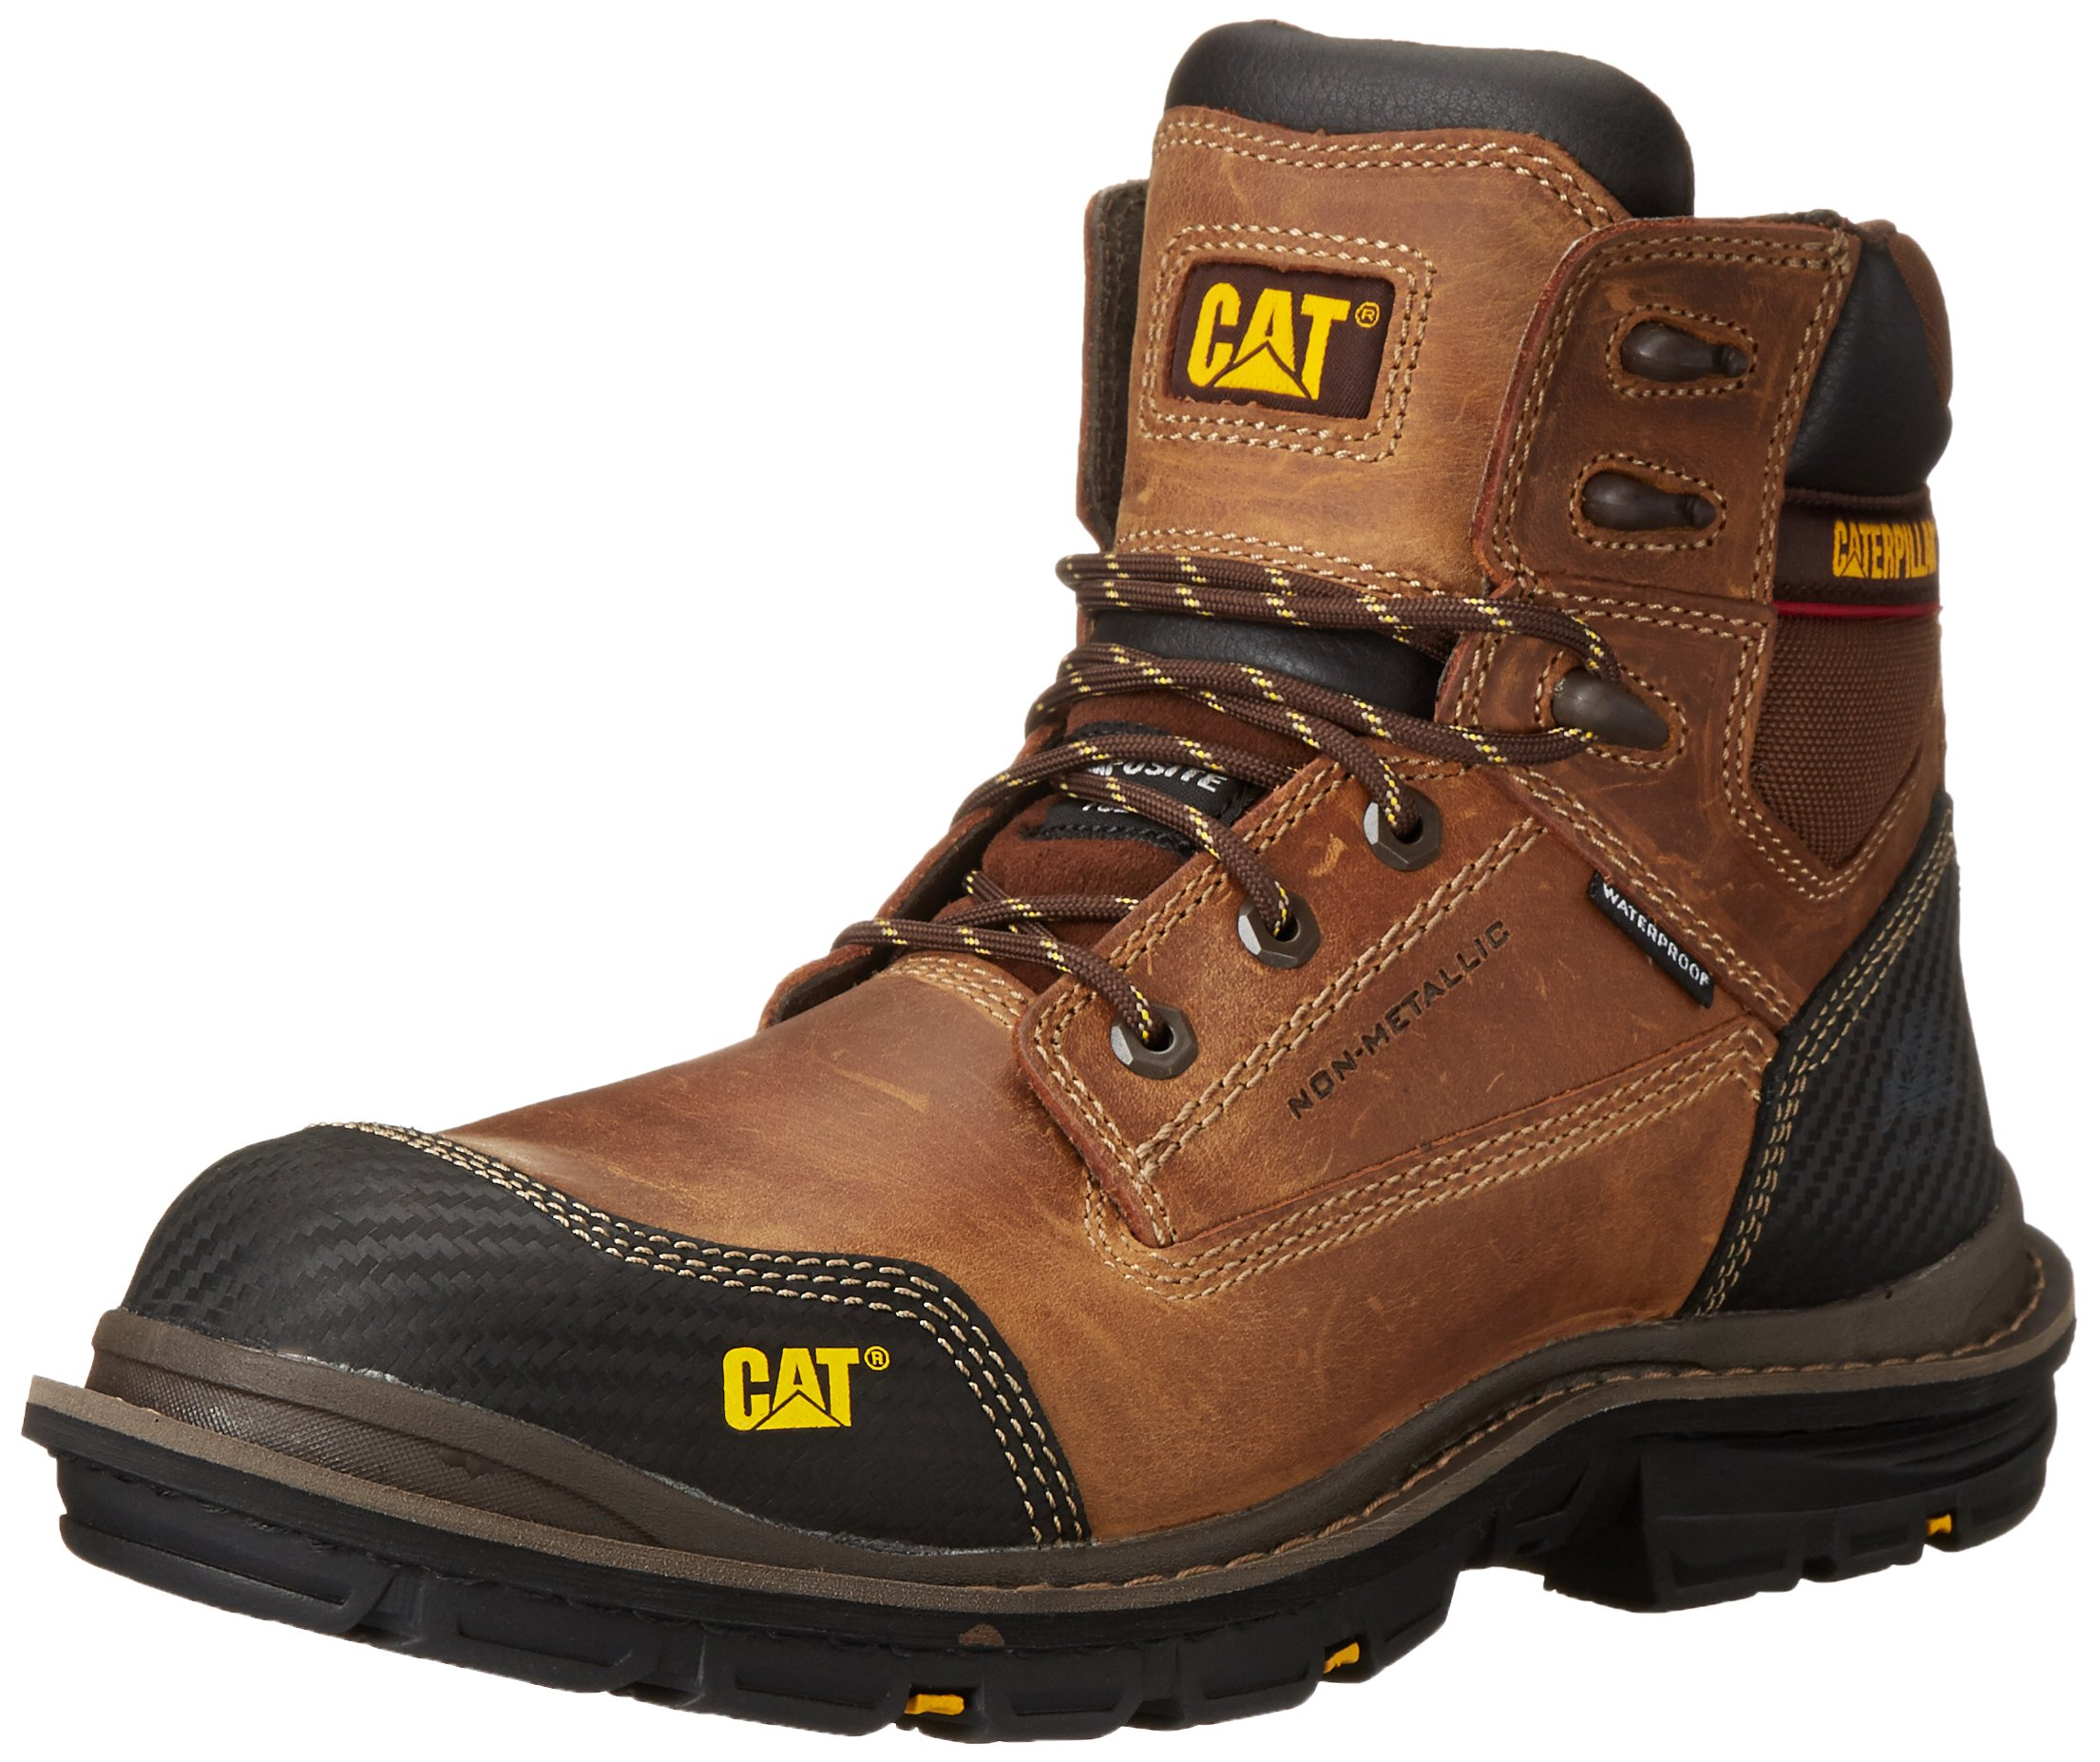 Caterpillar Men's Fabricate 6 Inch Tough Waterproof Comp Toe Work Boot, Brown, 12 M US